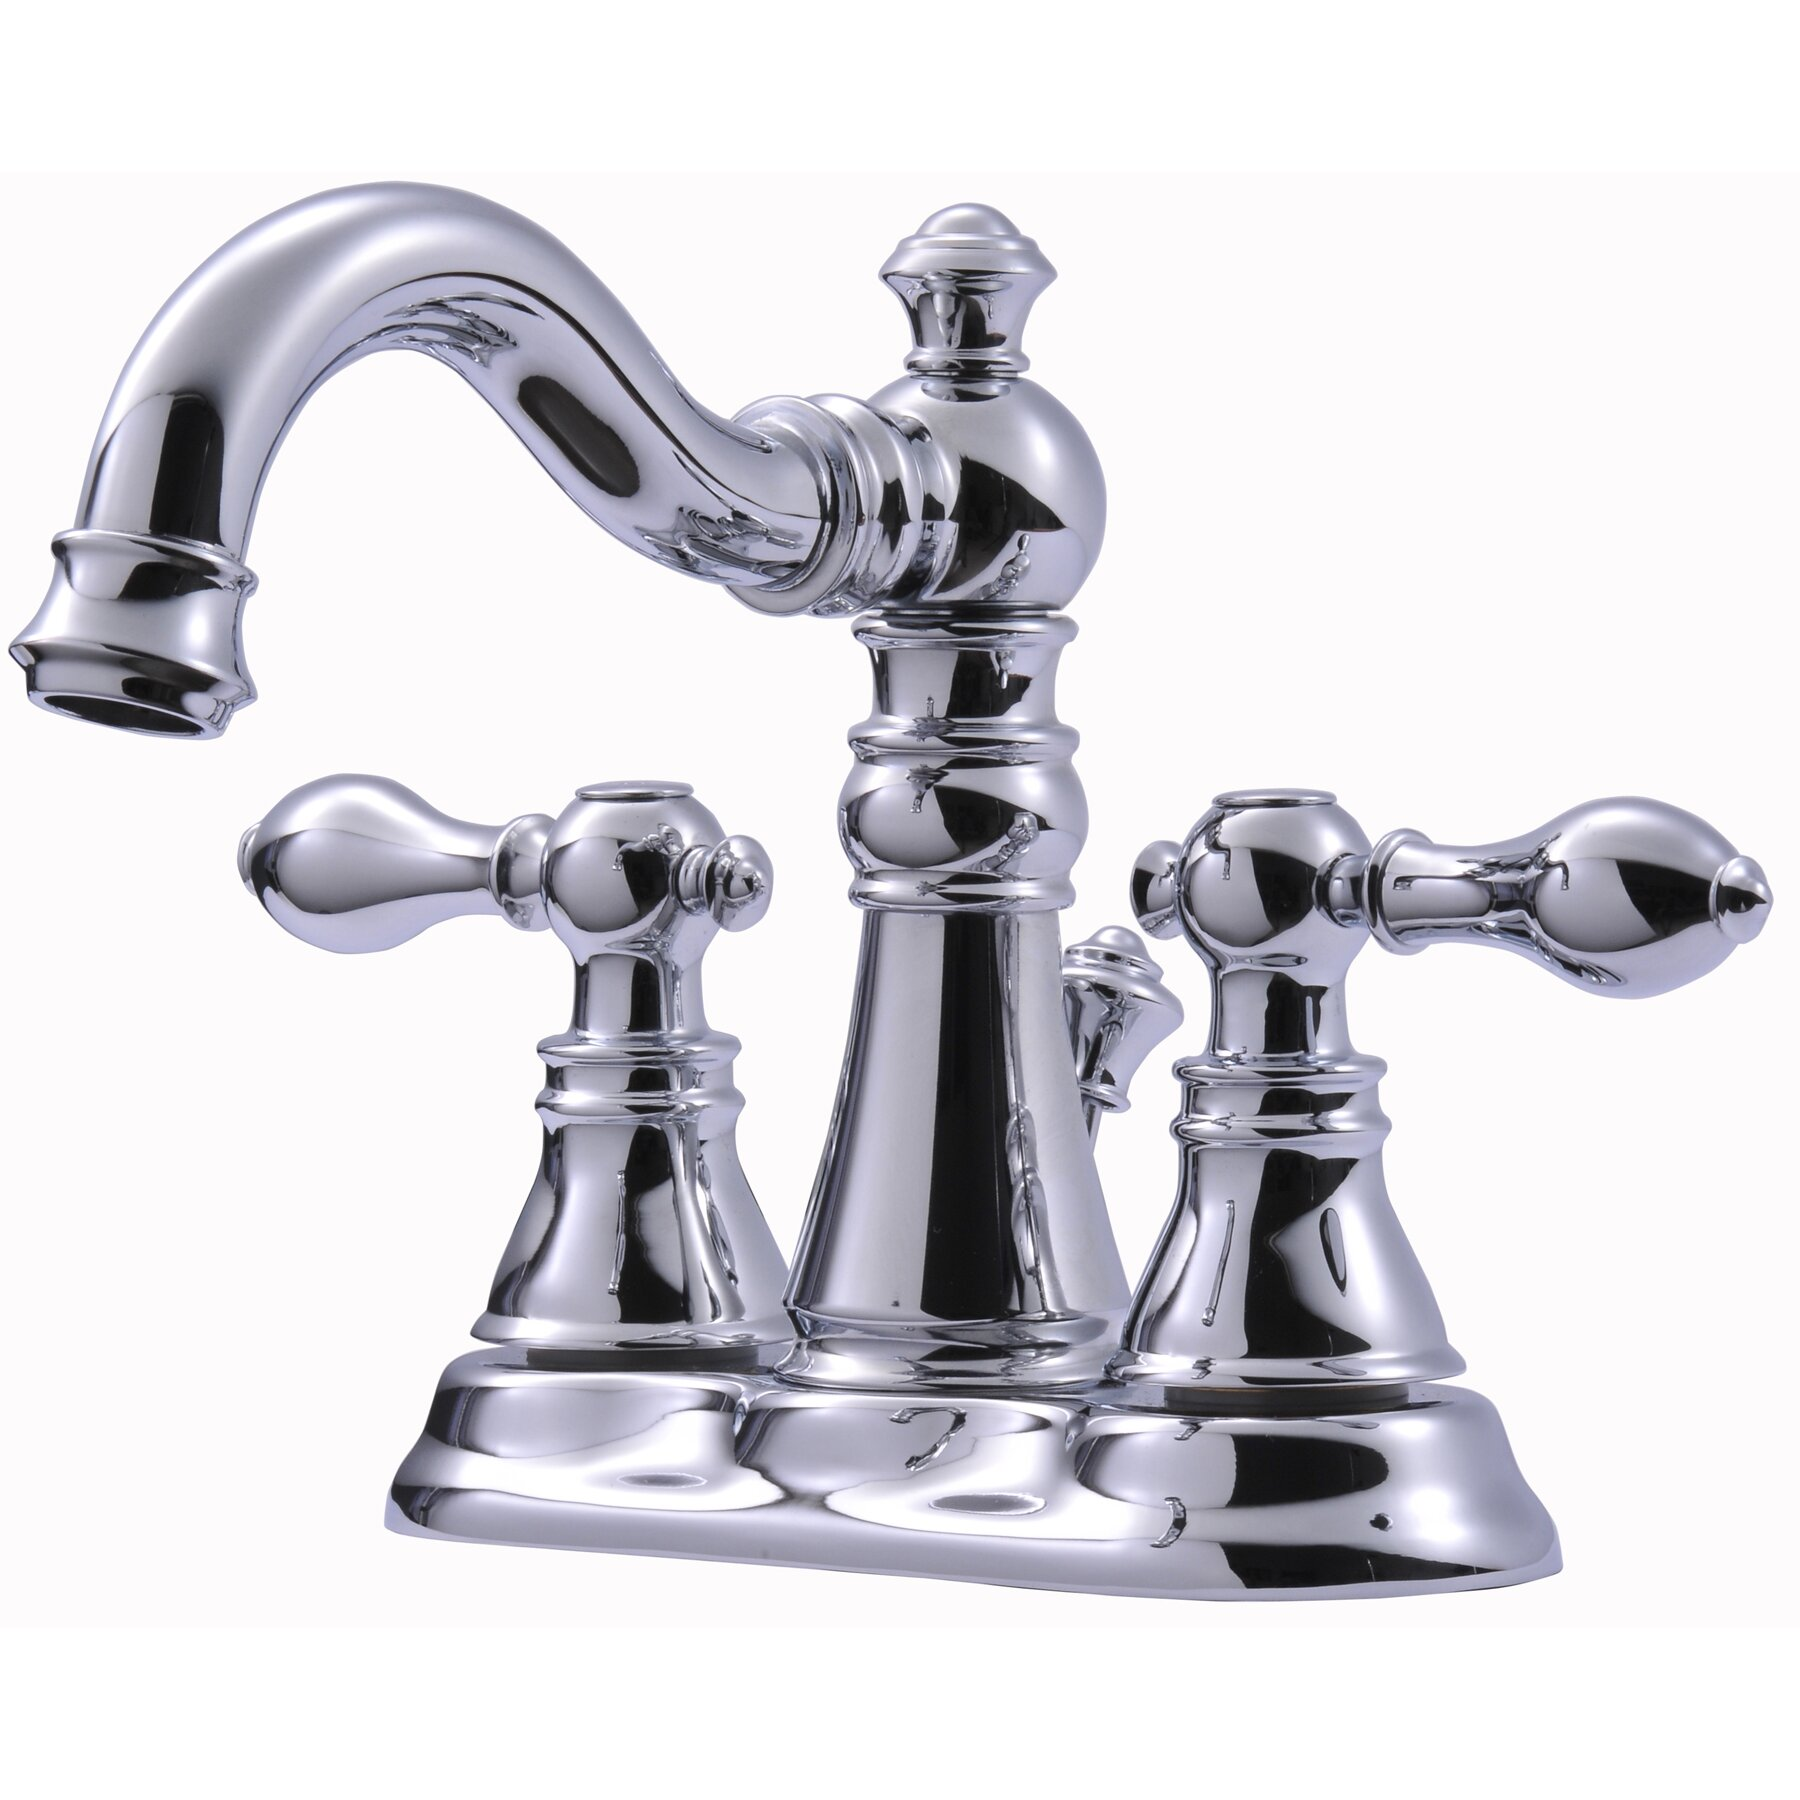 Victorian Gooseneck Lavatory Faucet With Metal Cross Handles In Orb Possible Faucet For Powder: Ultra Faucets Victorian Series Centerset Bathroom Faucet With Double Handles & Reviews